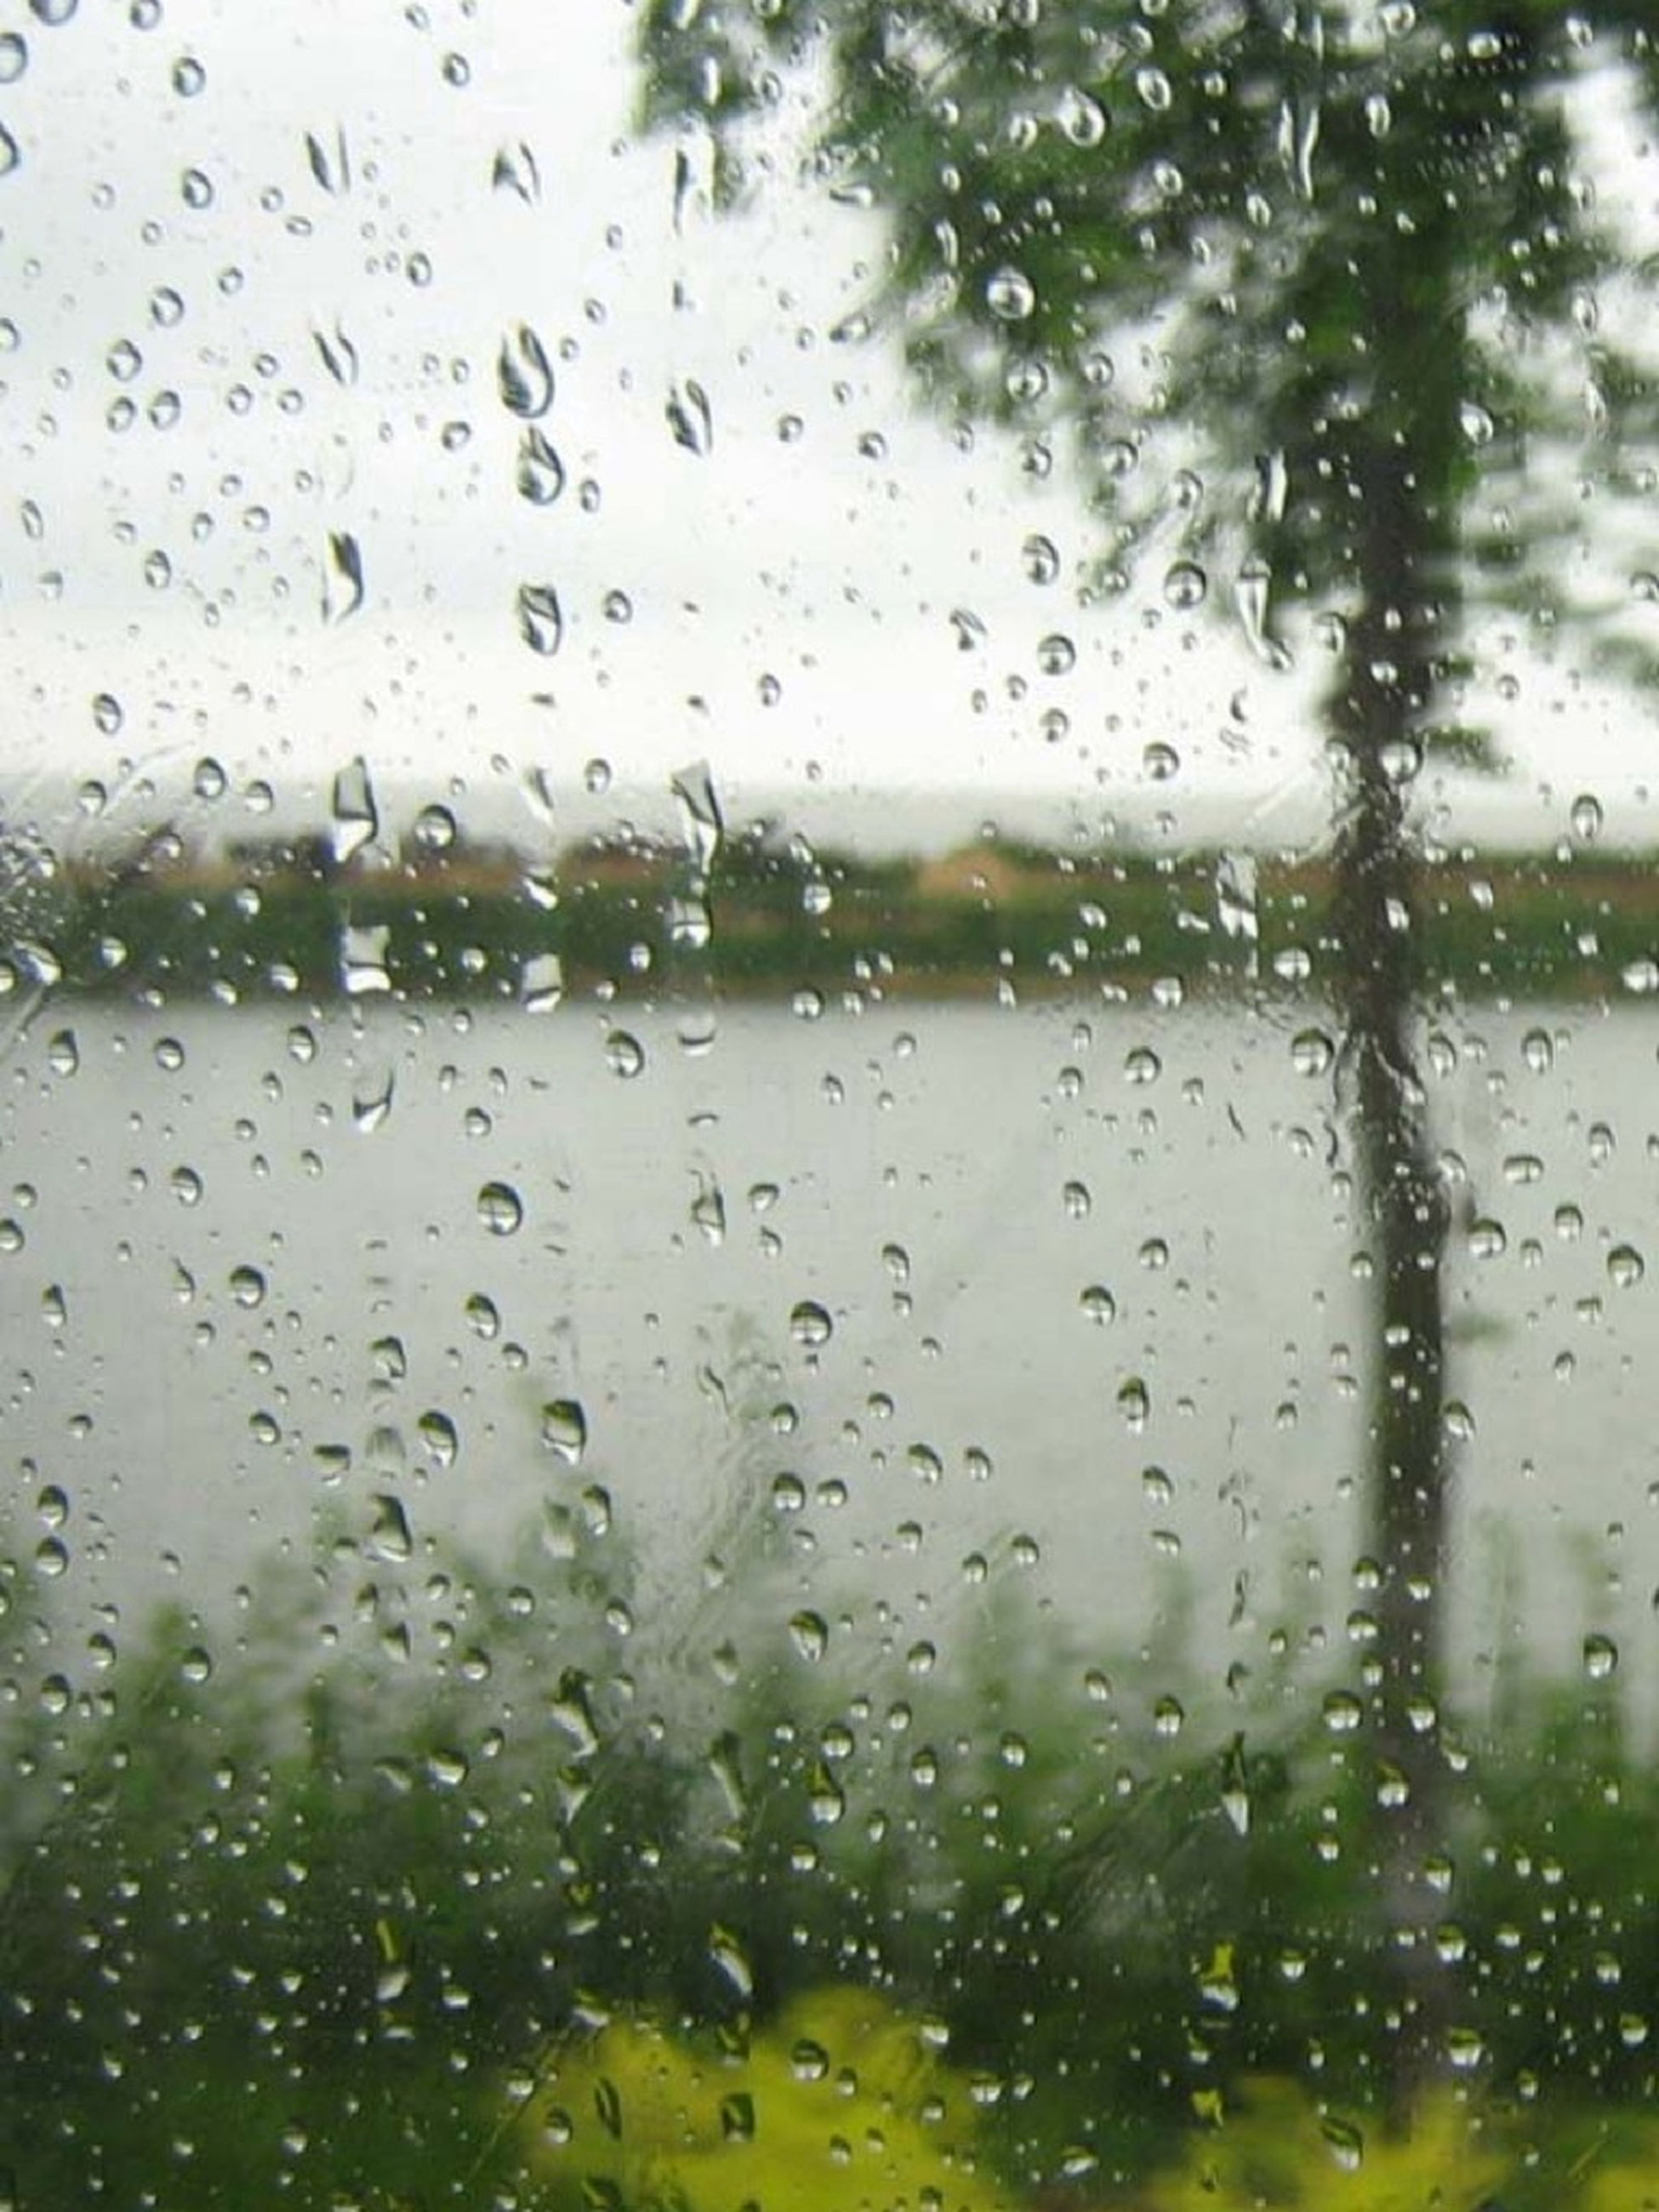 drop, wet, water, window, rain, raindrop, transparent, indoors, weather, glass - material, focus on foreground, full frame, season, backgrounds, sky, close-up, glass, droplet, water drop, monsoon